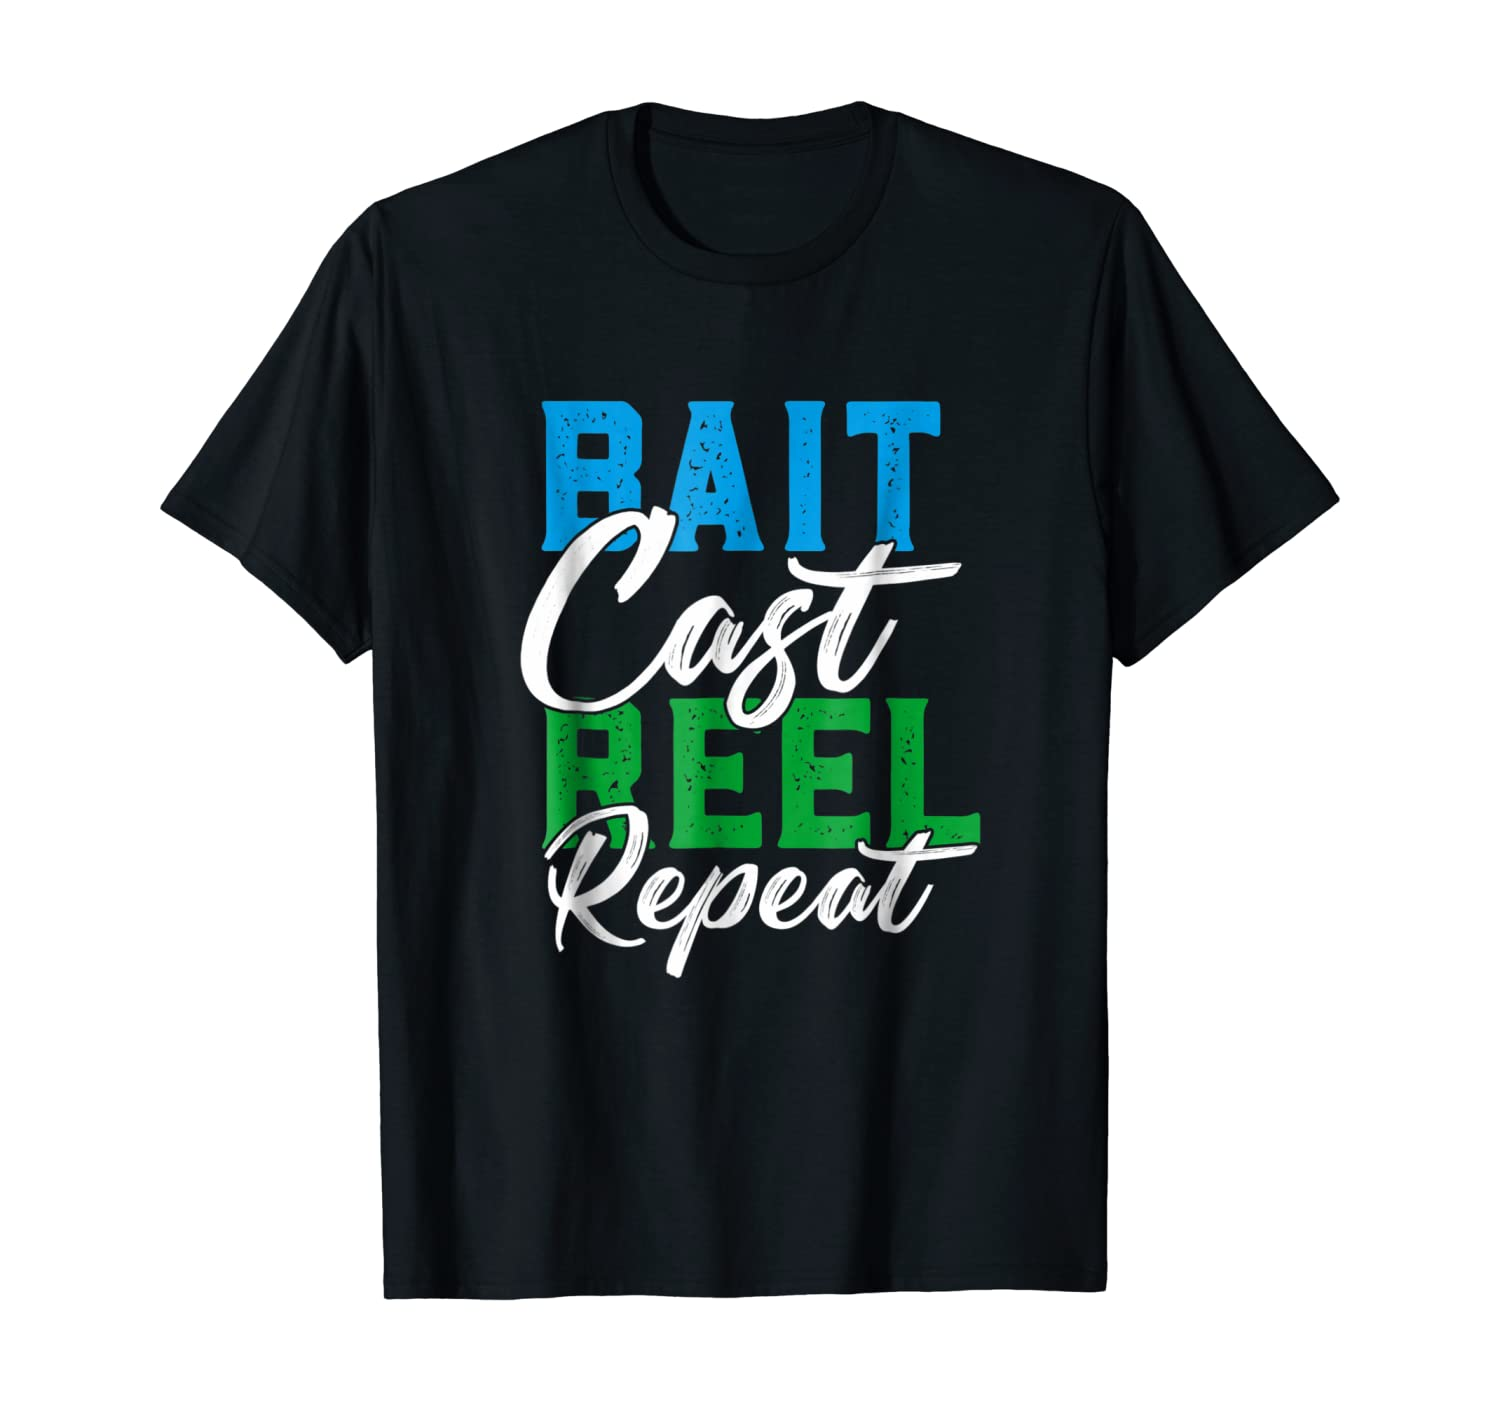 Bait Cast Reel Repeat | Funny Fishing Gift